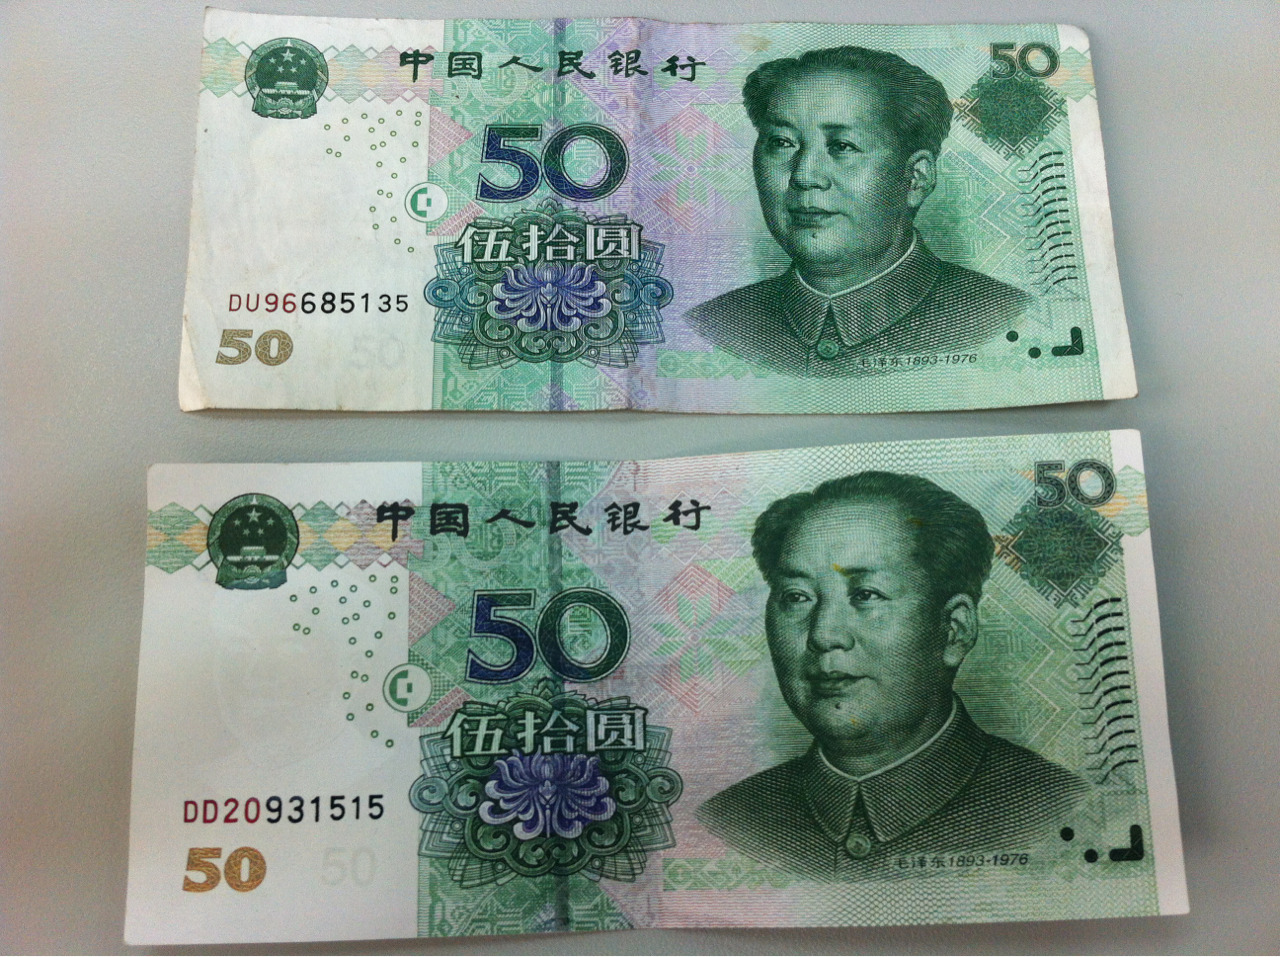 My first experience with fake Chinese money: Can you tell the difference between these two? It's nearly impossible and only by the texture of the paper can you tell the real from the  fake - it's the one on the bottom BTW. Even when you hold them to the light, they look exactly the same. Crazy how close the copies are! I now keep giving it to shops - not to con them -but to see if they can tell the difference. My poor barista at Starbucks was about to stick it in the register when I stopped her to point out its fakeness. With this game its only a matter of time before someone will take it for good without either of us knowing…